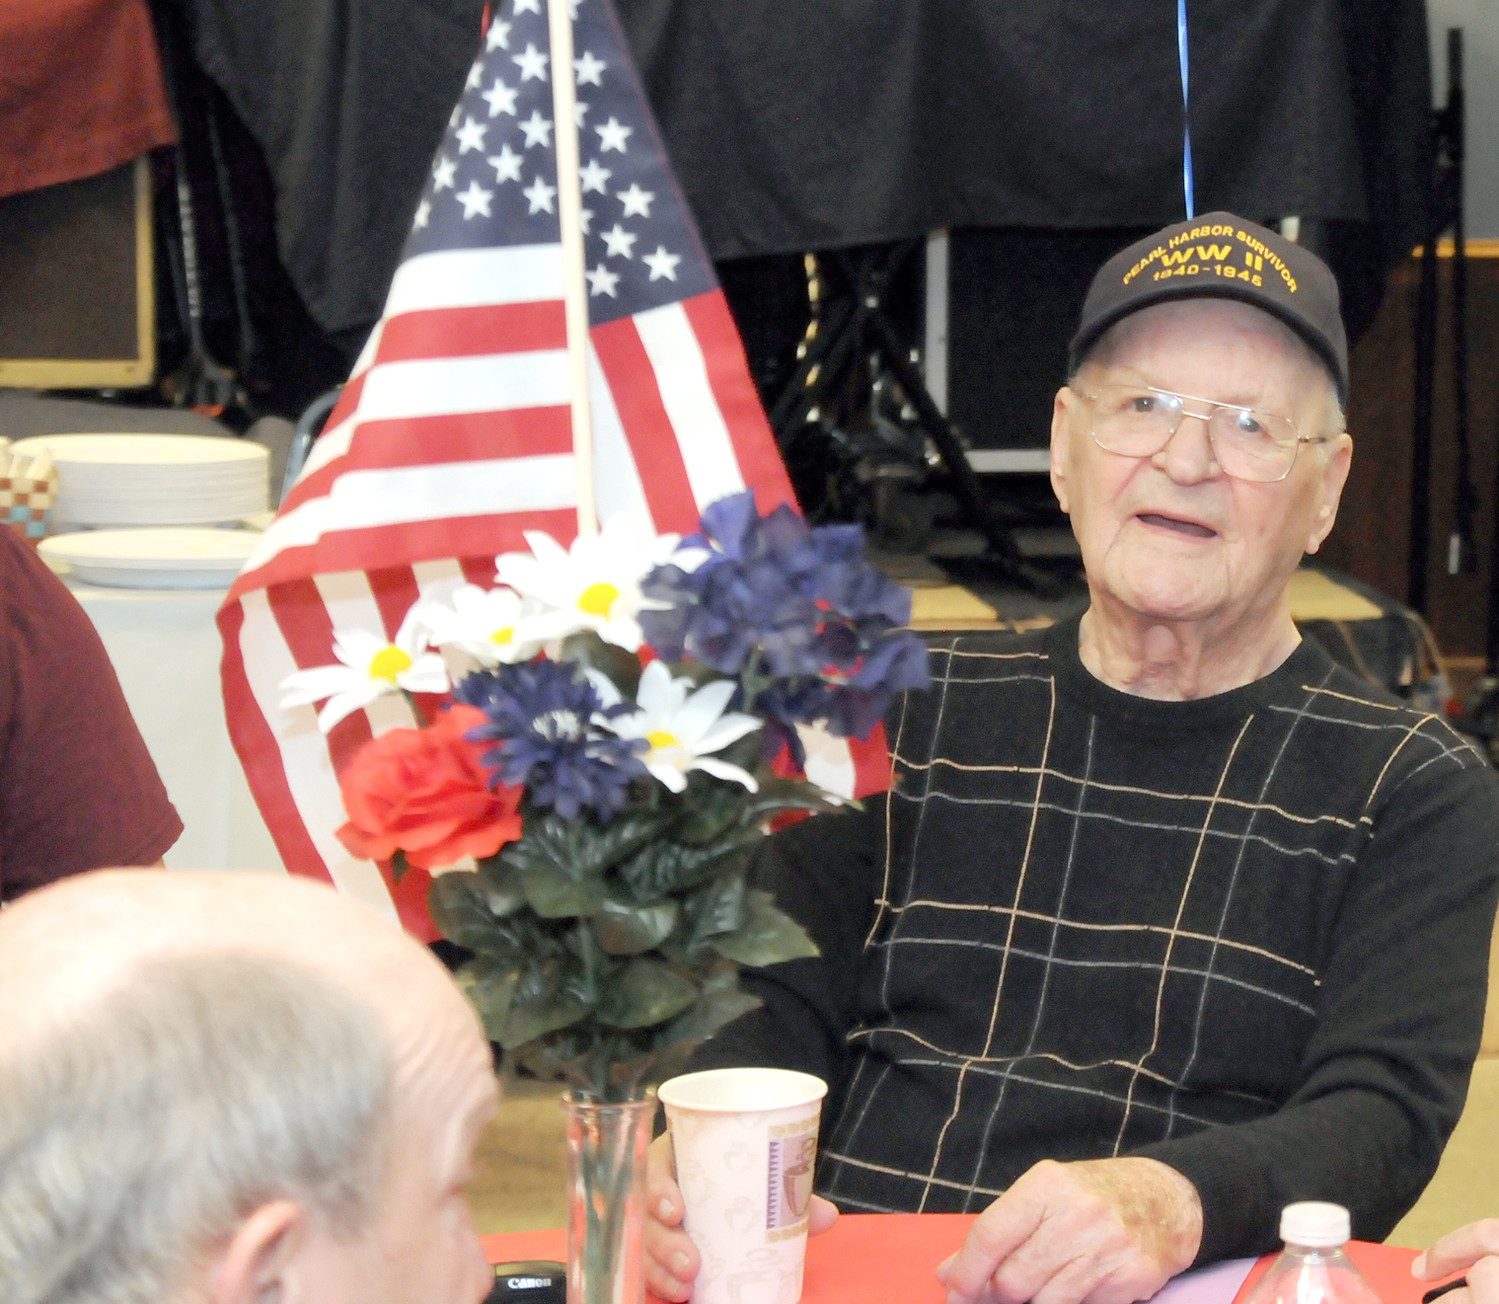 GEORGE ALLEN is the only survivor of the Japanese attack on Pearl Harbor still living in this area. He is looking forward to Thursday's Pearl Harbor Day commemoration at the Cleveland Elks Lodge. The ceremony, sponsored by the Sons of the American Revolution with State Rep. Kevin Brooks as the guest speaker, will begin at 10 a.m.